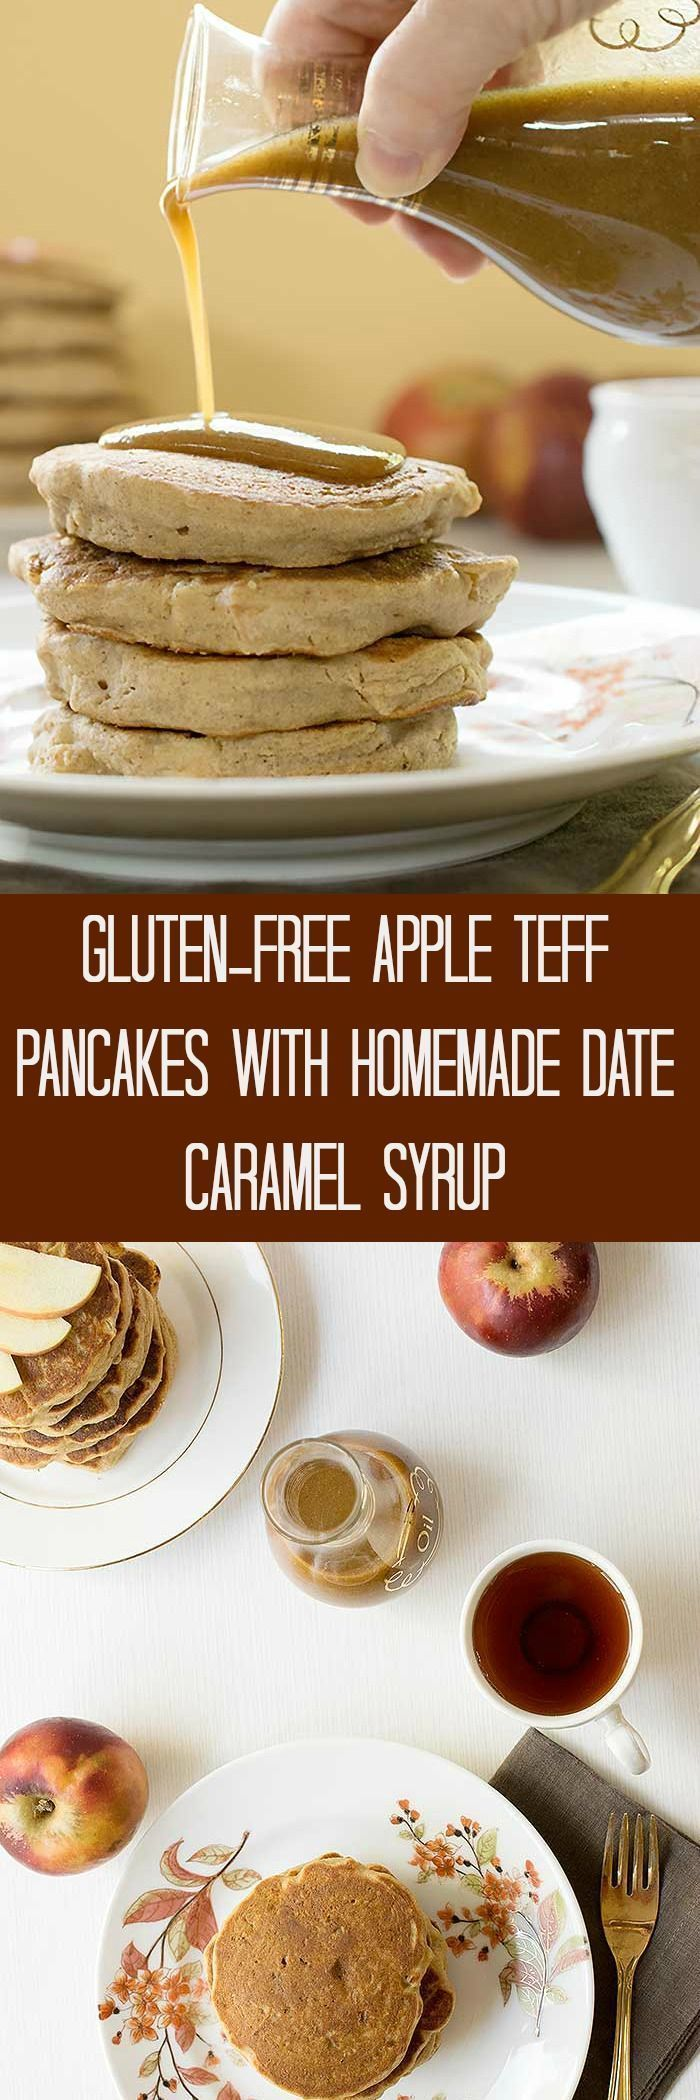 Celebrate another awesome fall morning with these Gluten-free Apple Teff Pancakes with Homemade Date Caramel Syrup. Great for weekends, holidays or any time you'd like a healthy breakfast that tastes like dessert.